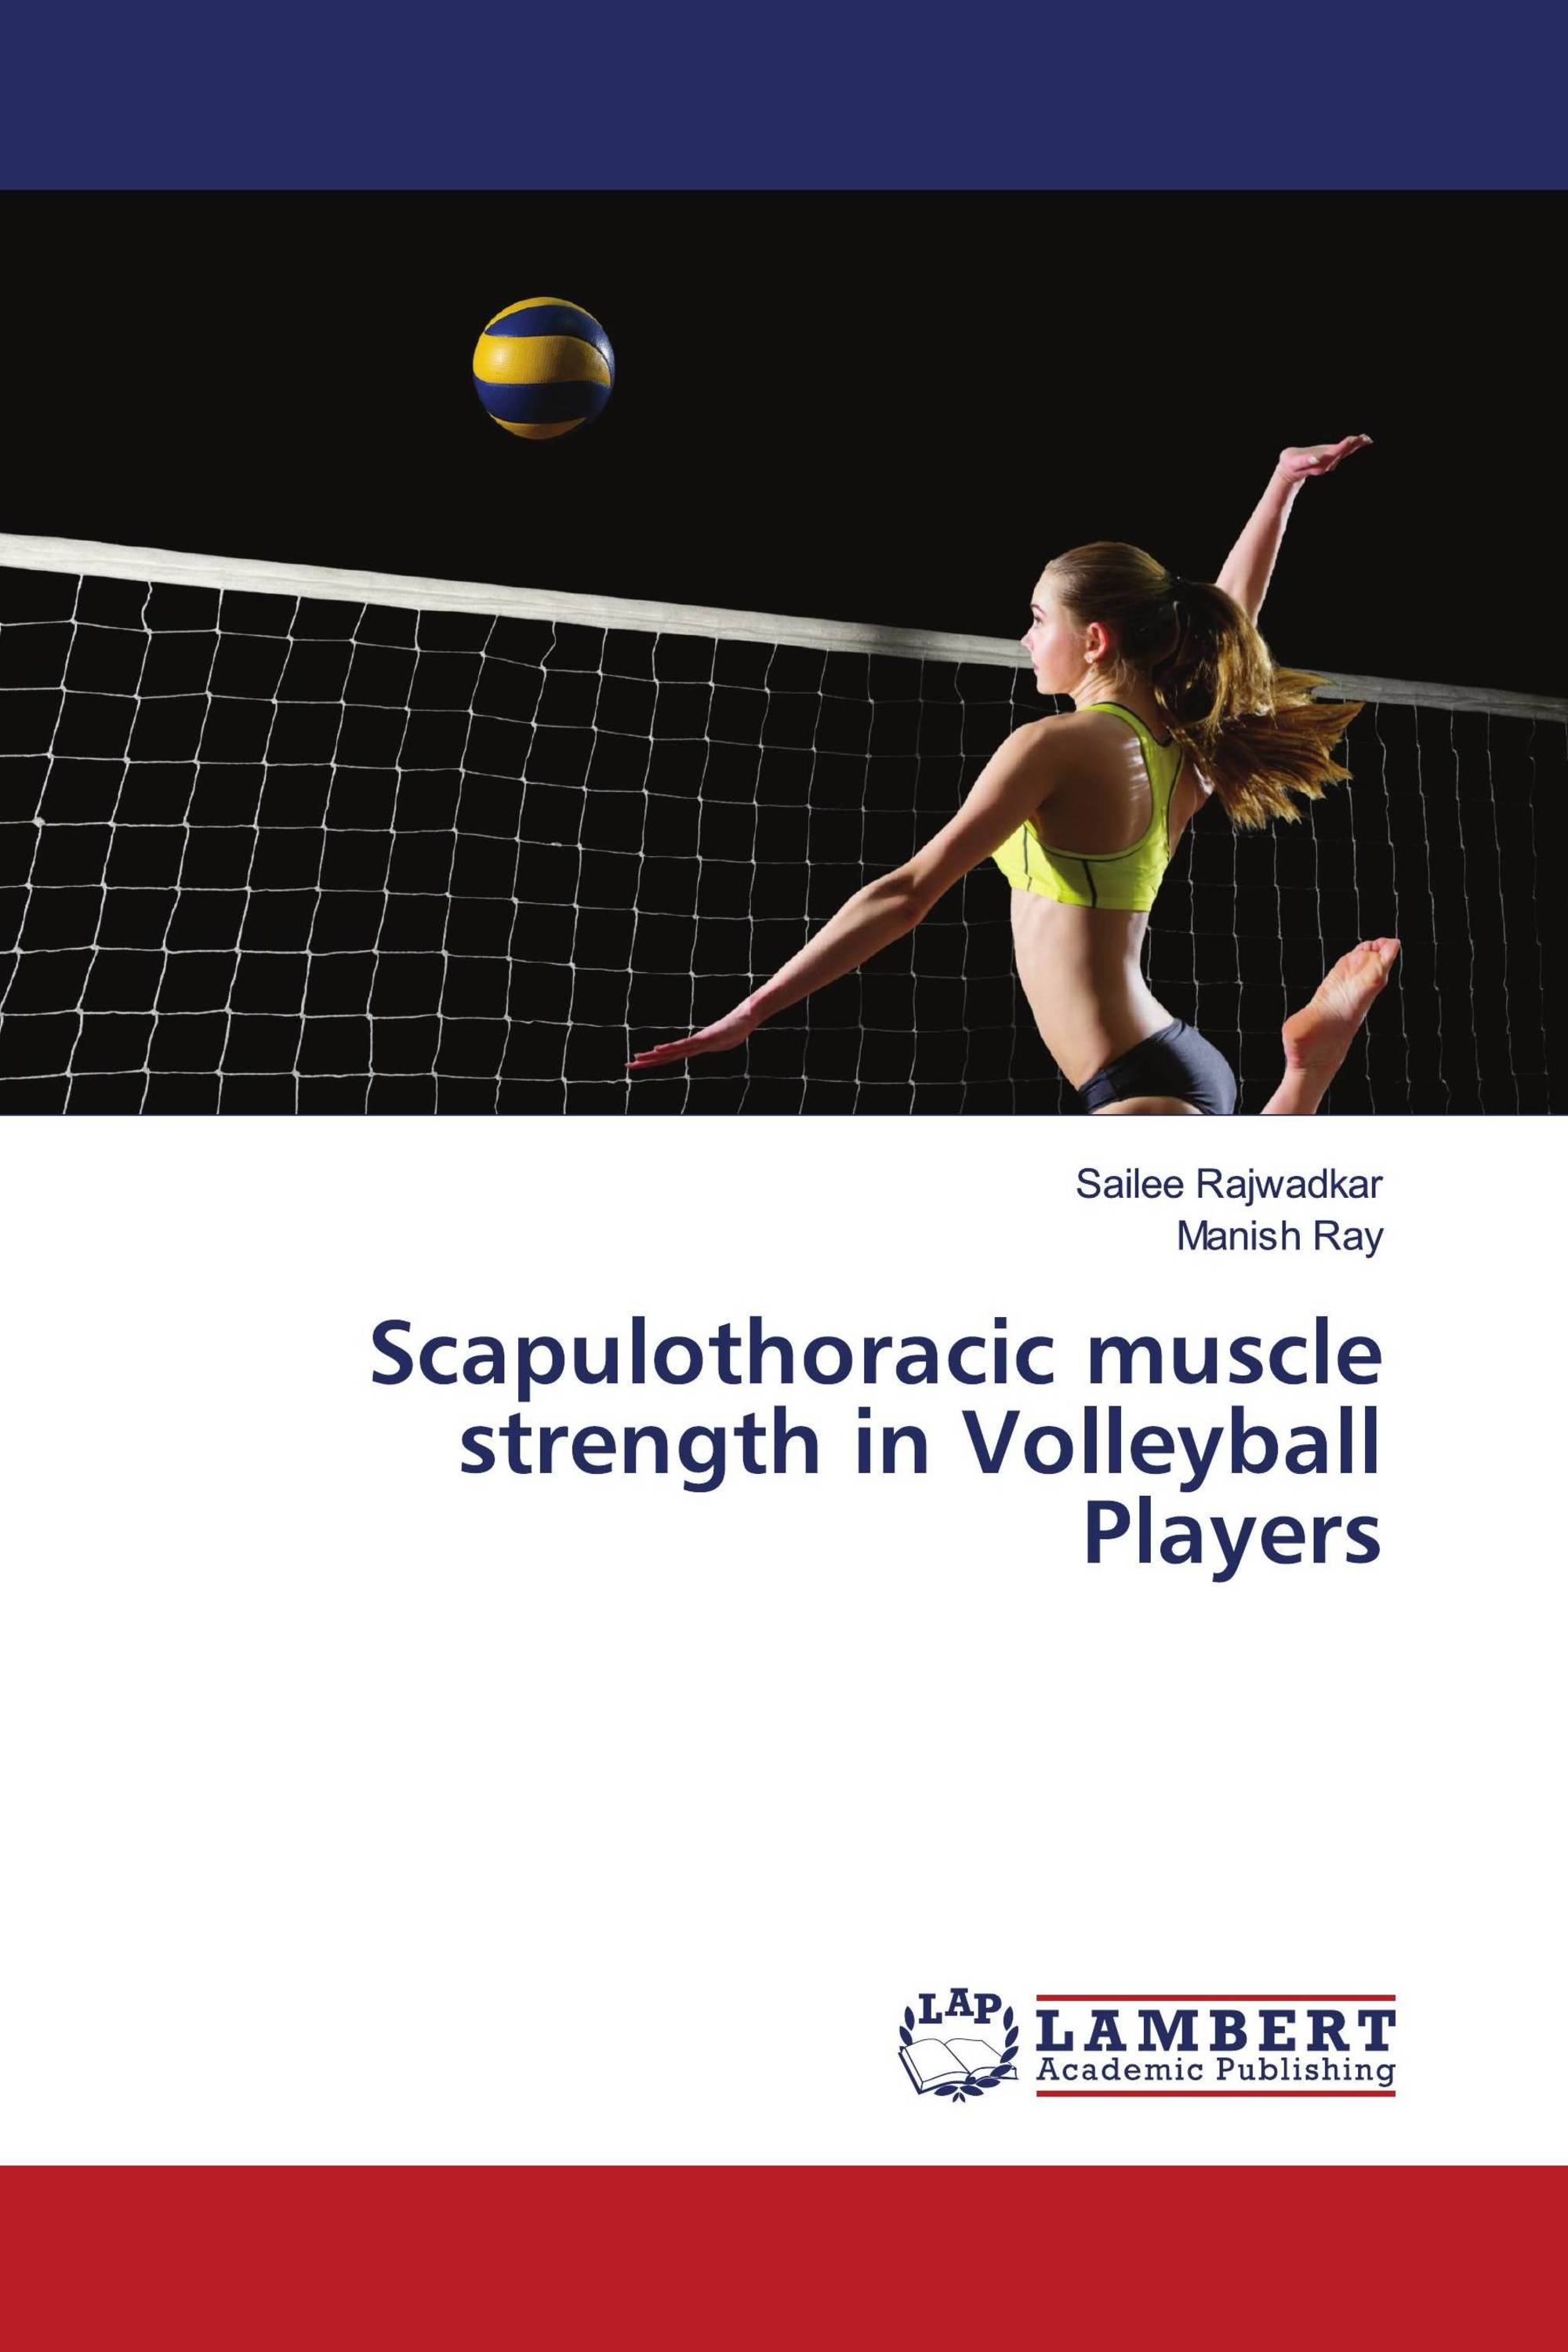 Scapulothoracic muscle strength in Volleyball Players